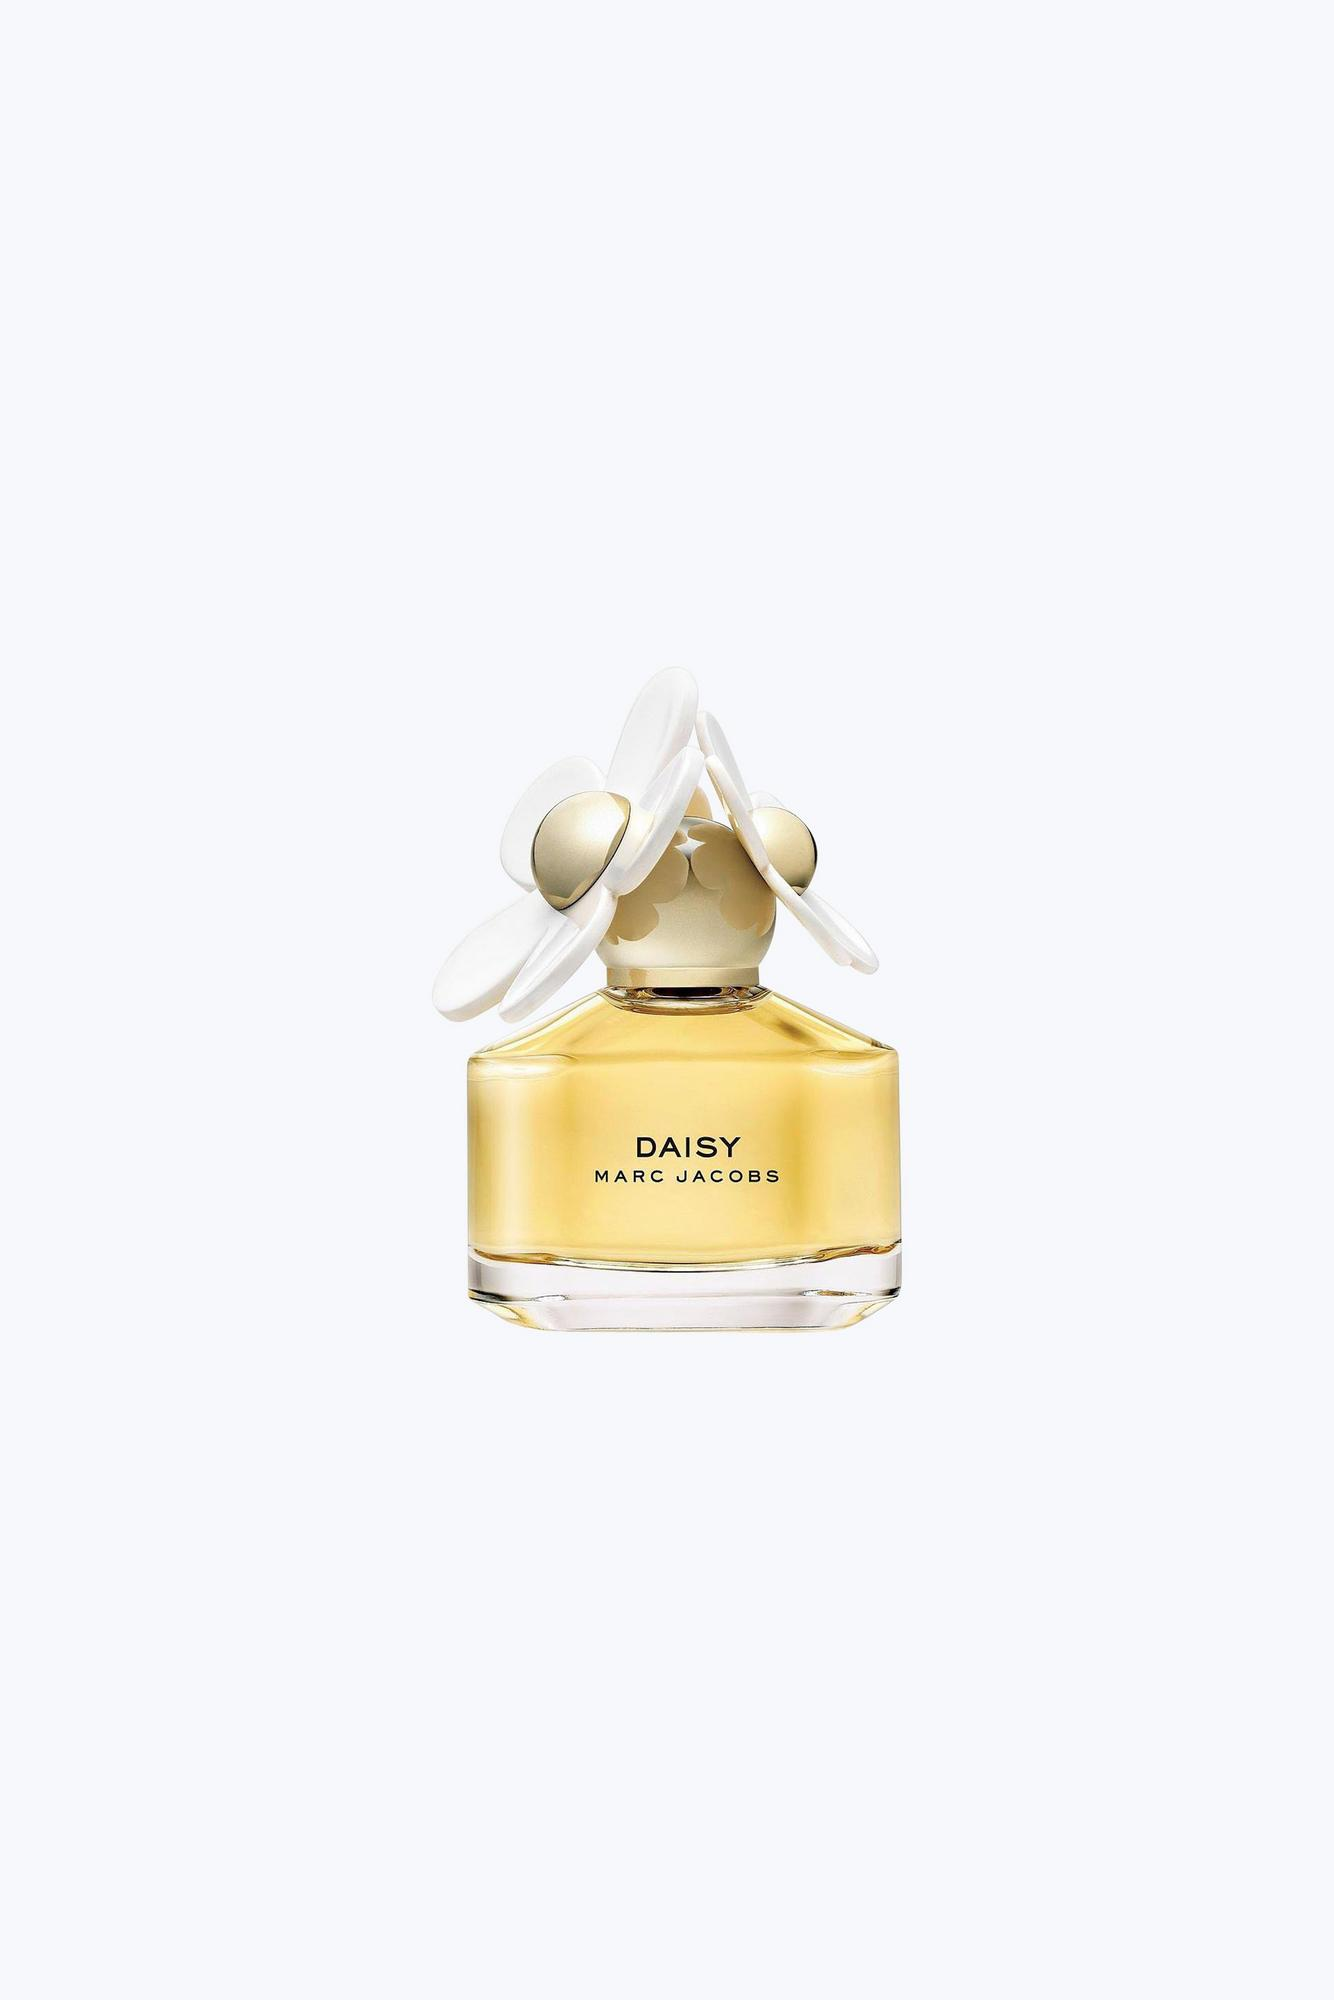 Daisy Eau De Toilette 1.7 Oz by Marc Jacobs